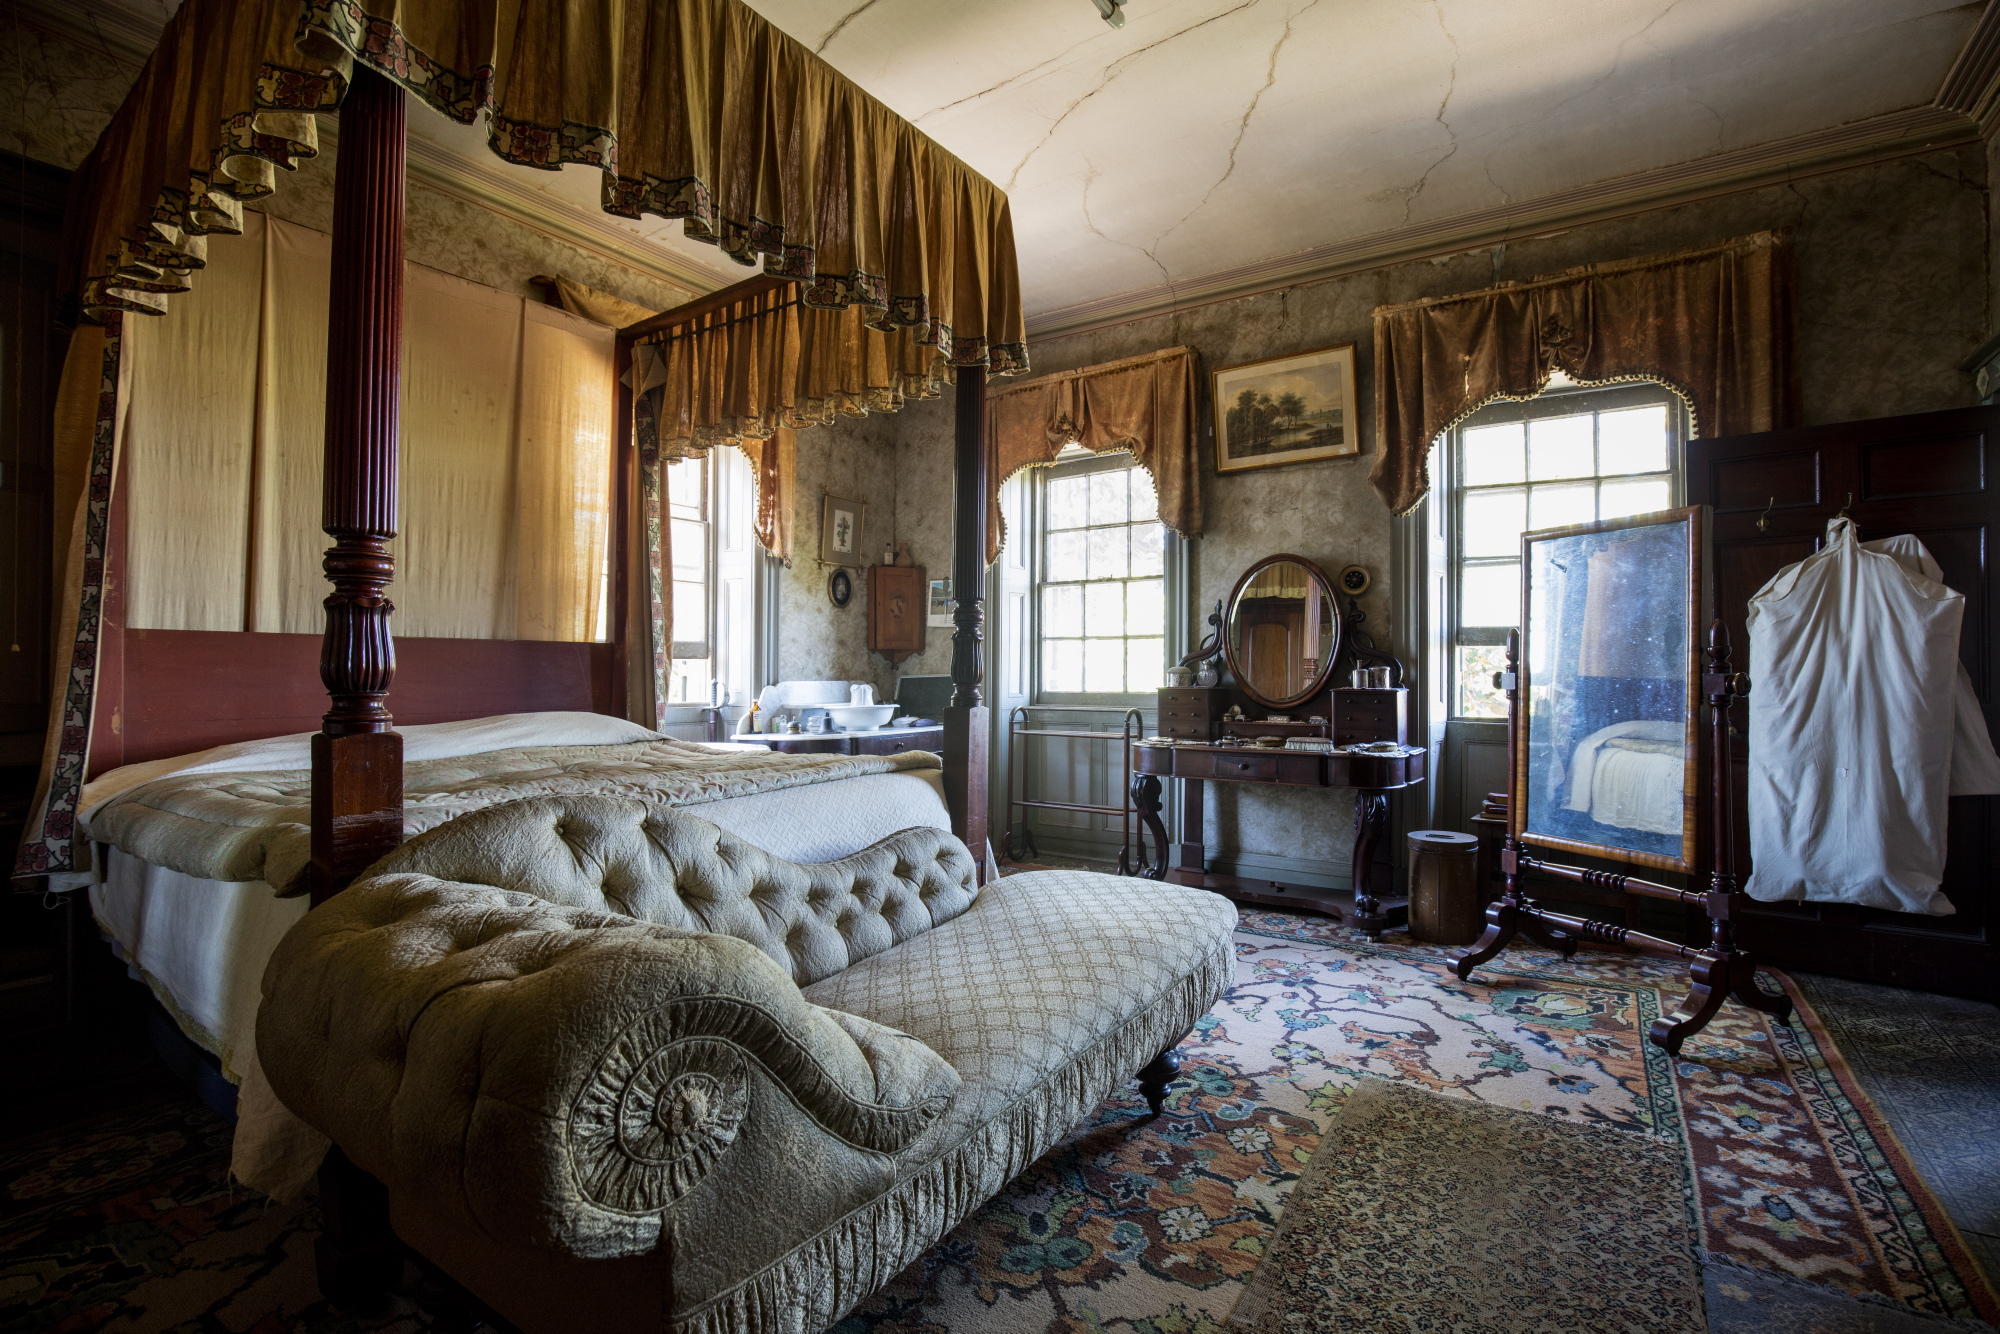 Principal bedroom in an historic home with an interior inspired by - The Principal Bedroom At Rouse Hill House Amp